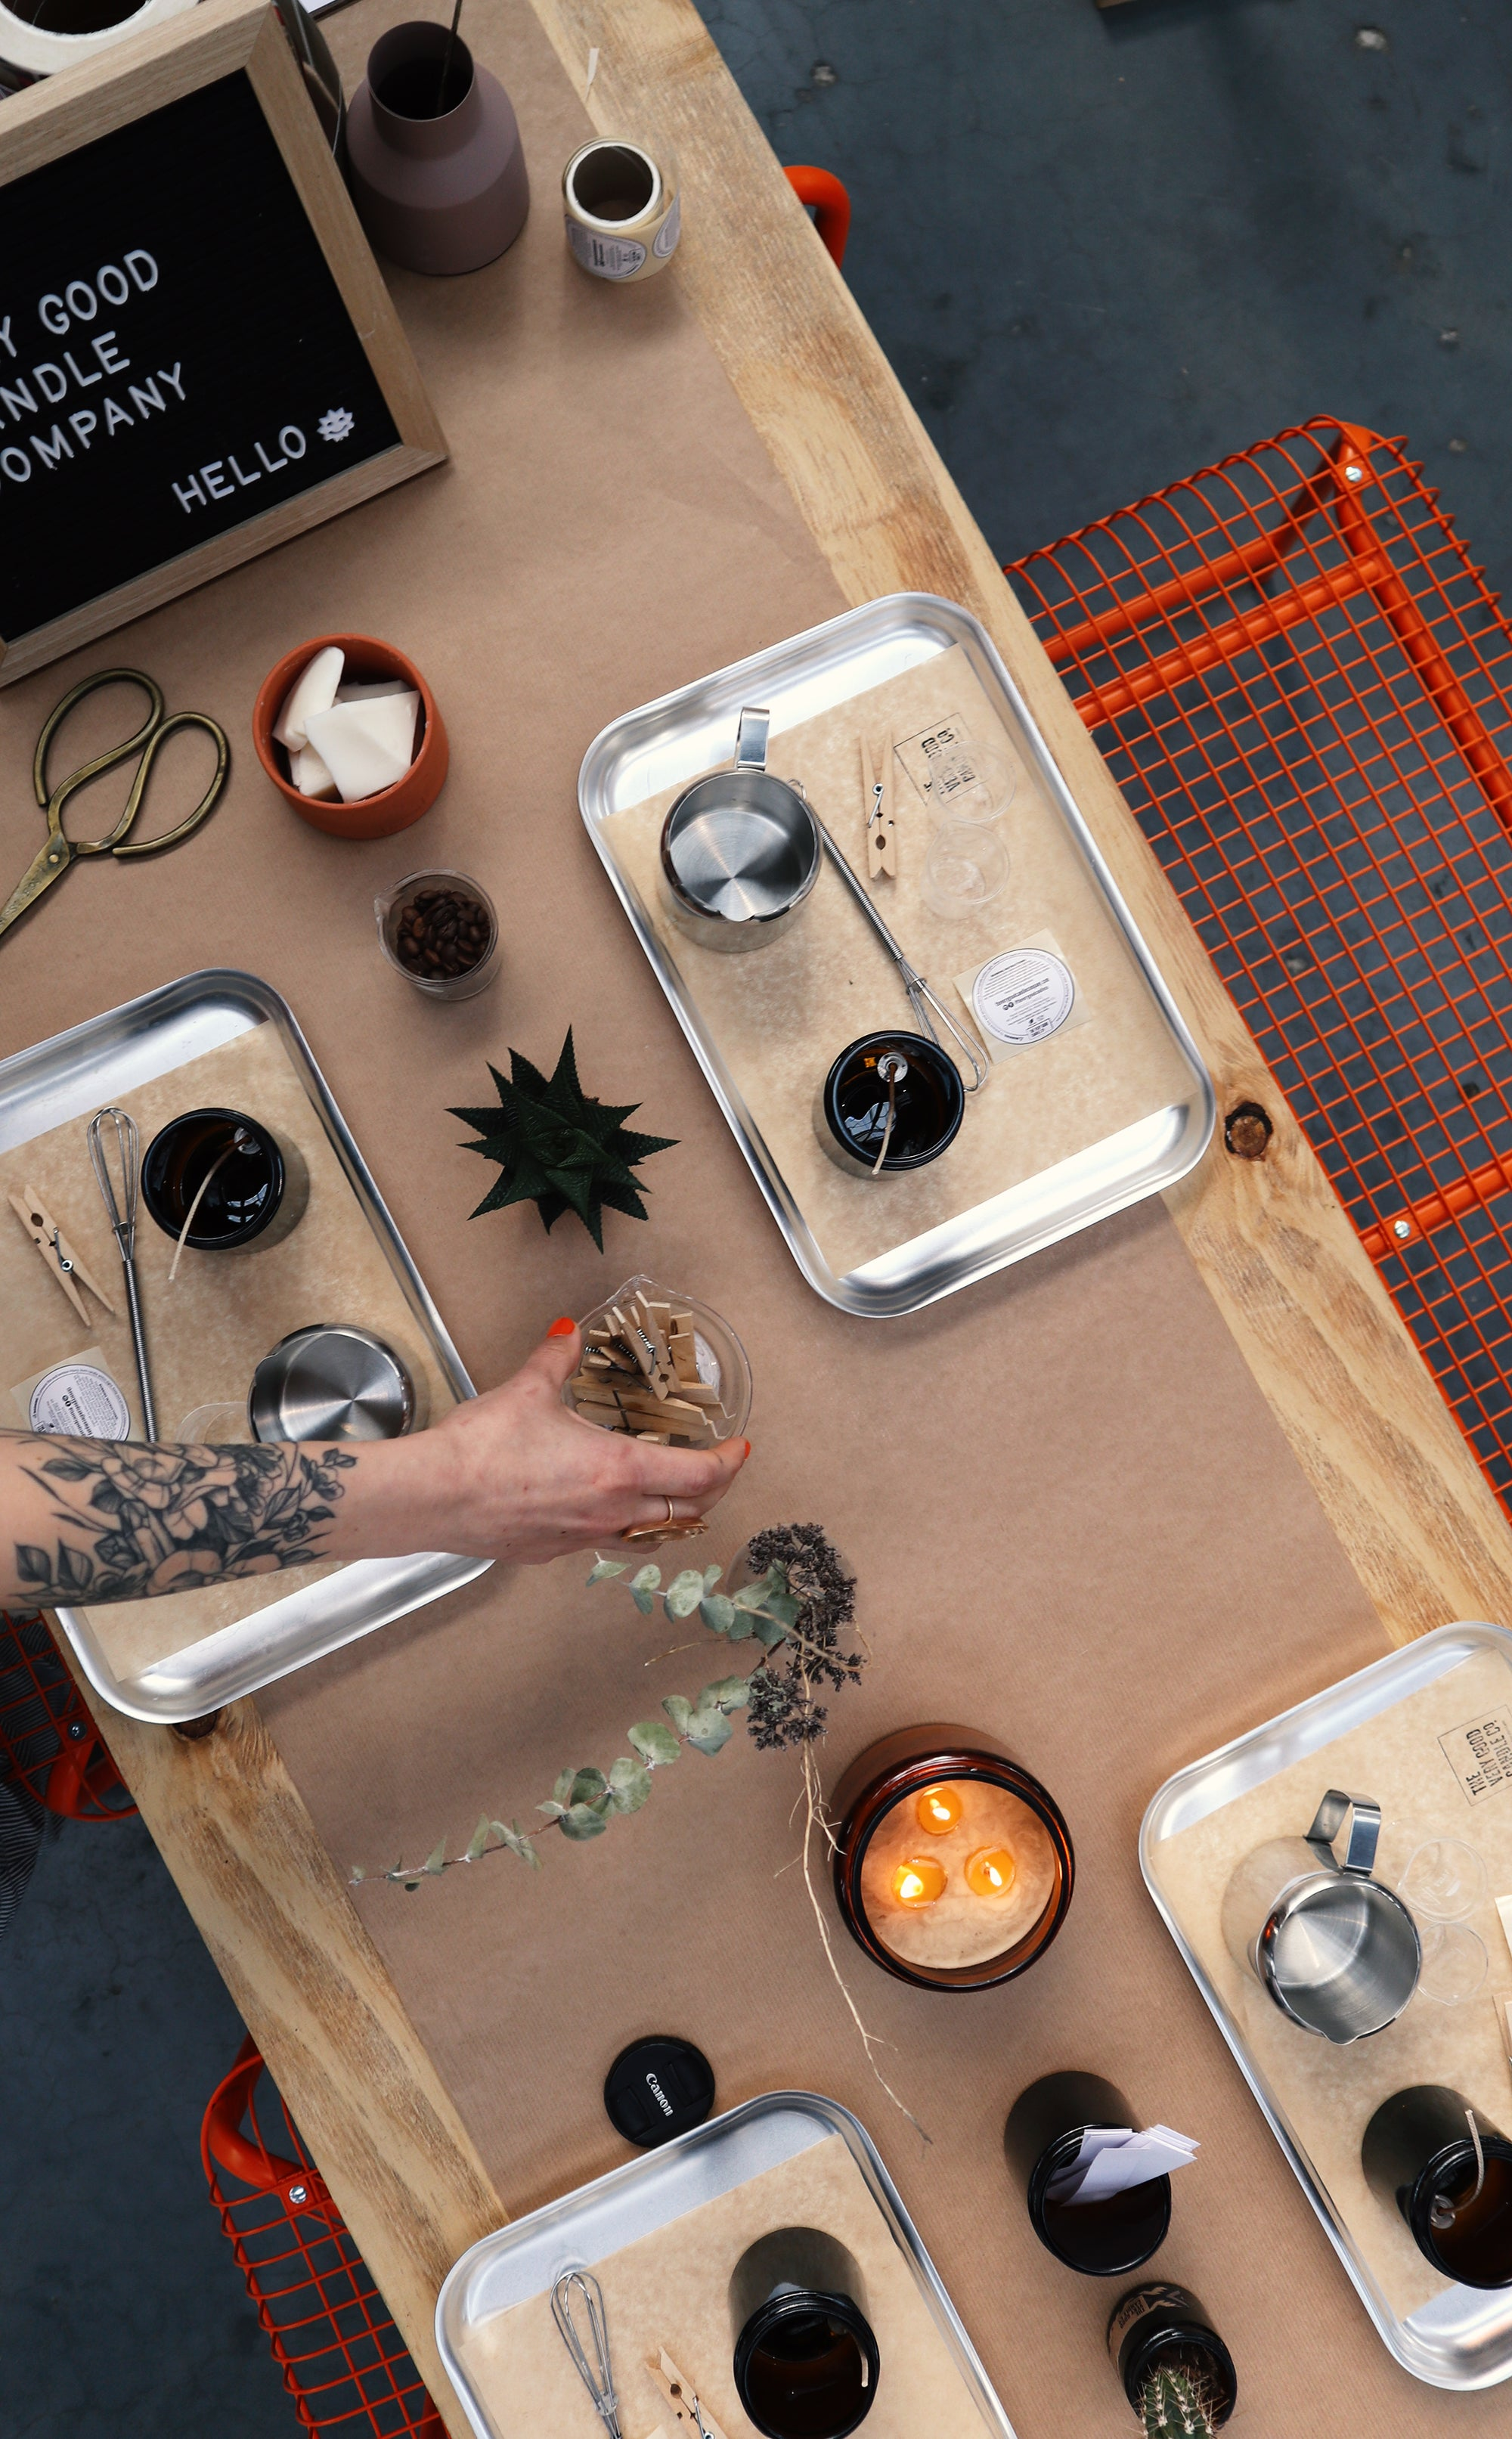 POSTPONED - TheVeryGood Candle Making Workshop  THE LAB/Saturday 28th Mar, 11:00AM